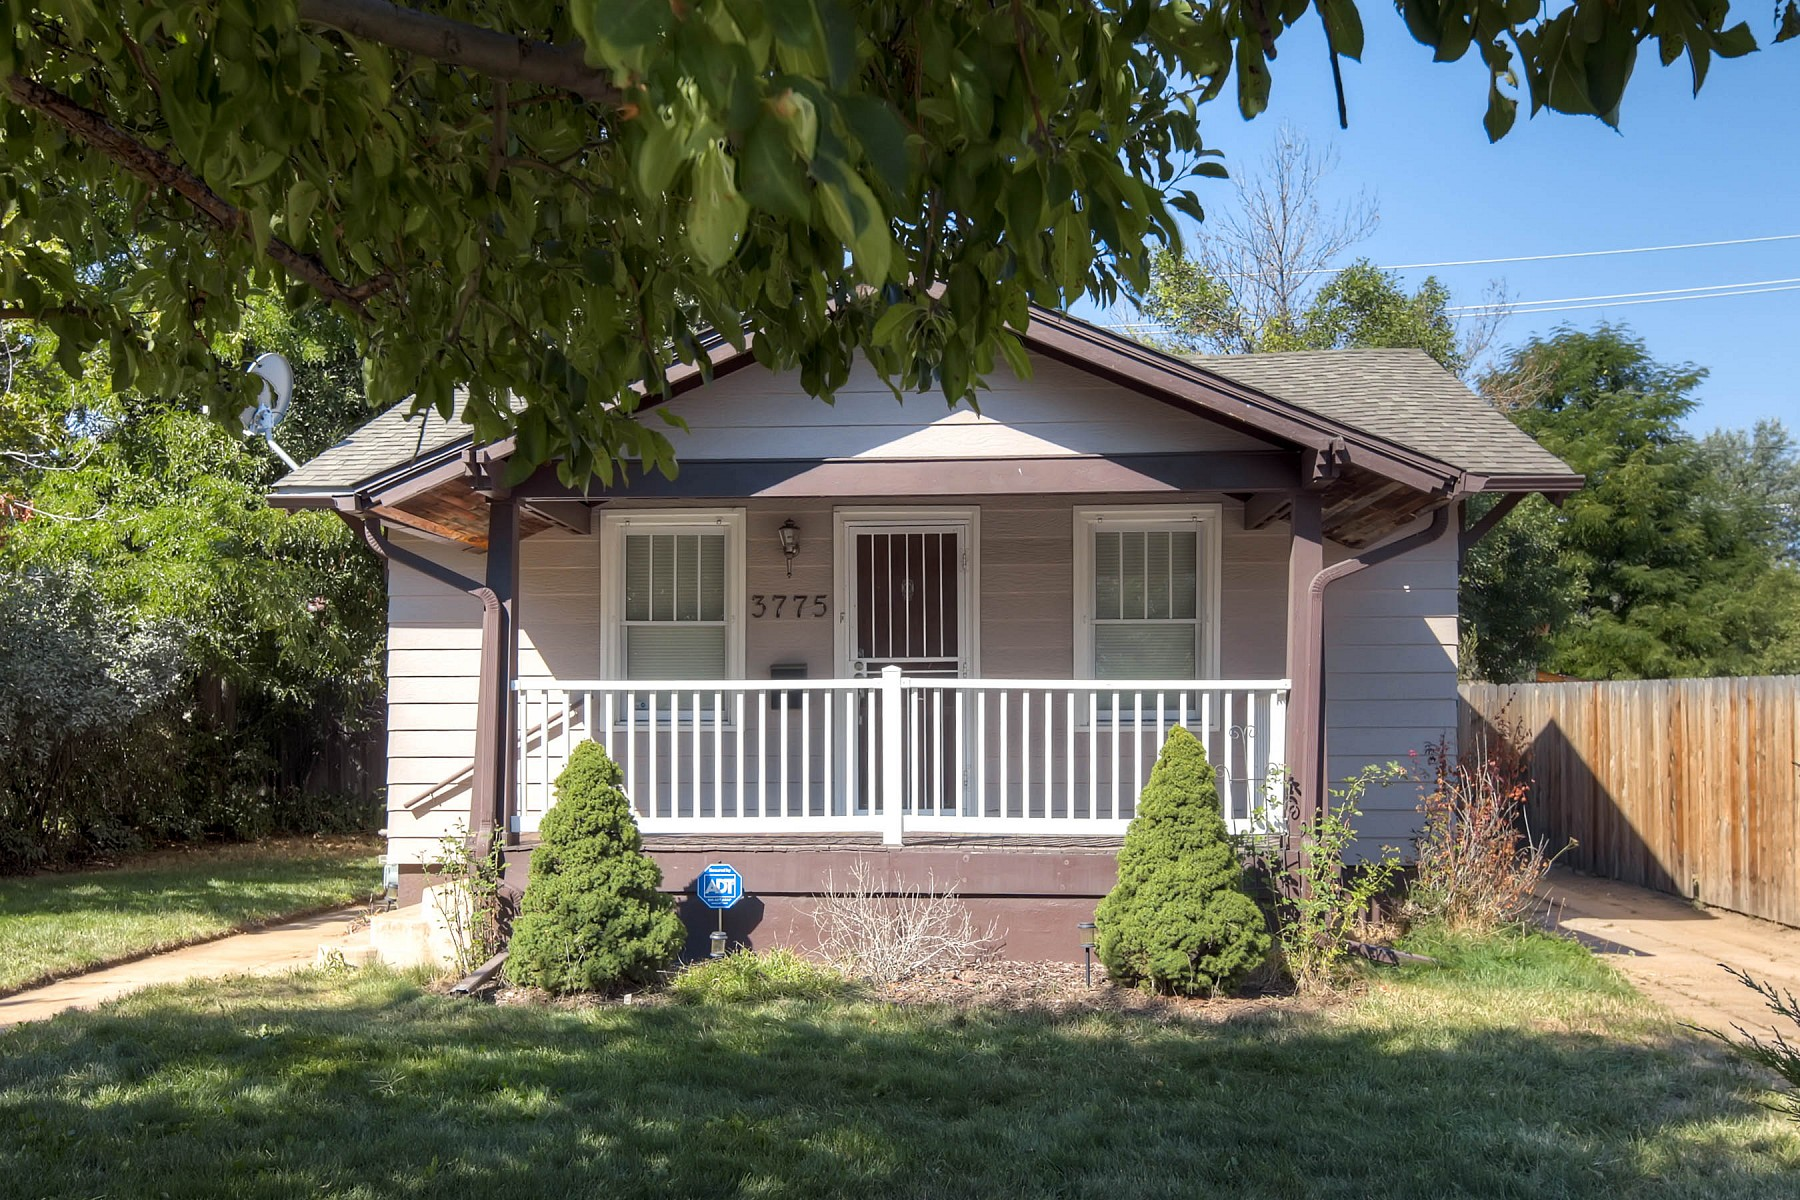 3775 South Sherman Street, Englewood, CO 80113